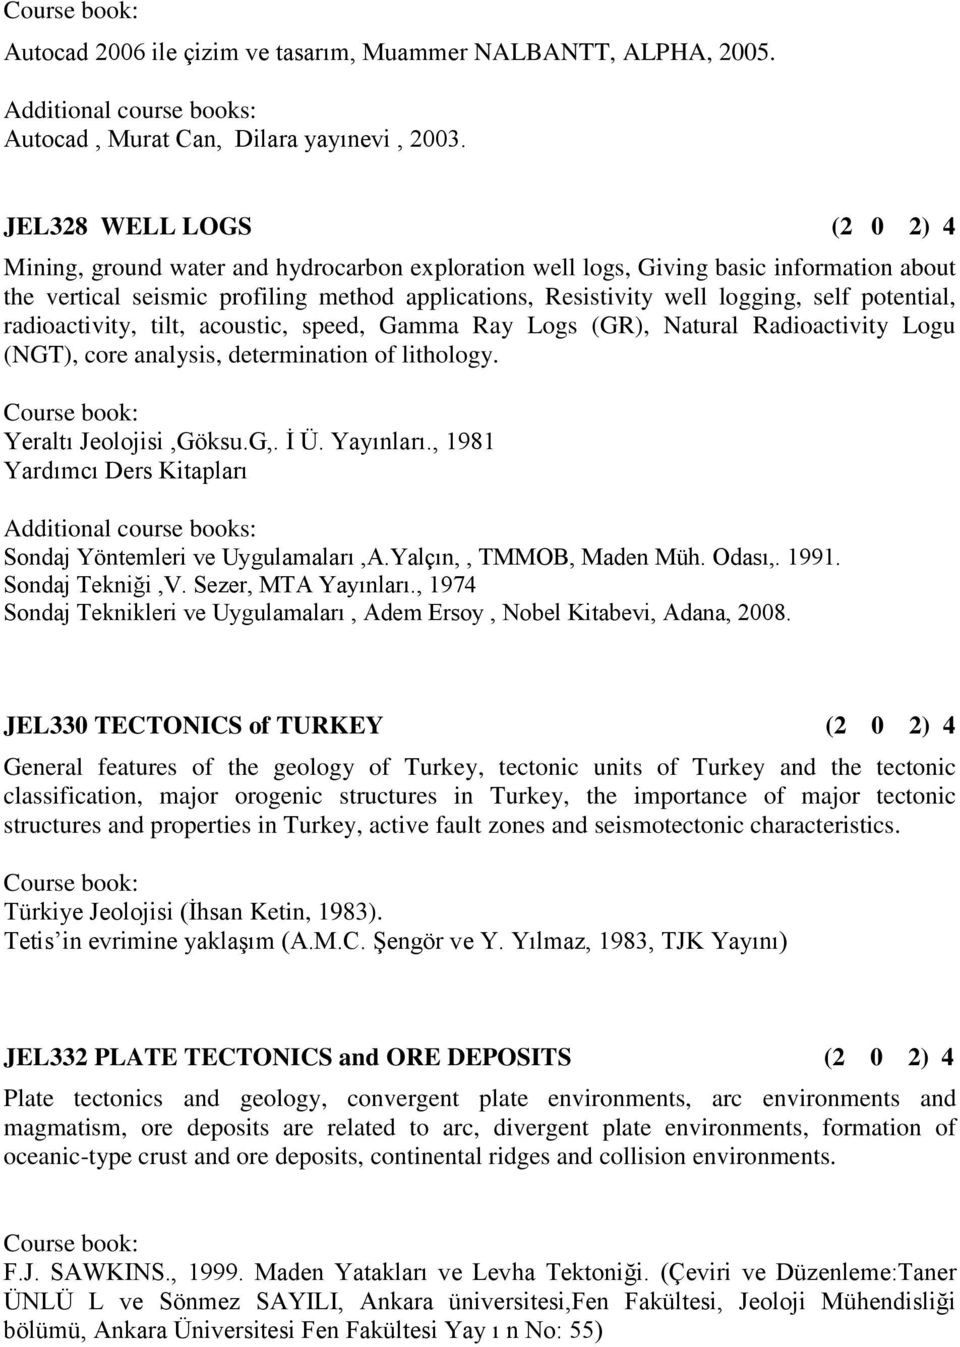 self potential, radioactivity, tilt, acoustic, speed, Gamma Ray Logs (GR), Natural Radioactivity Logu (NGT), core analysis, determination of lithology. Yeraltı Jeolojisi,Göksu.G,. İ Ü. Yayınları.